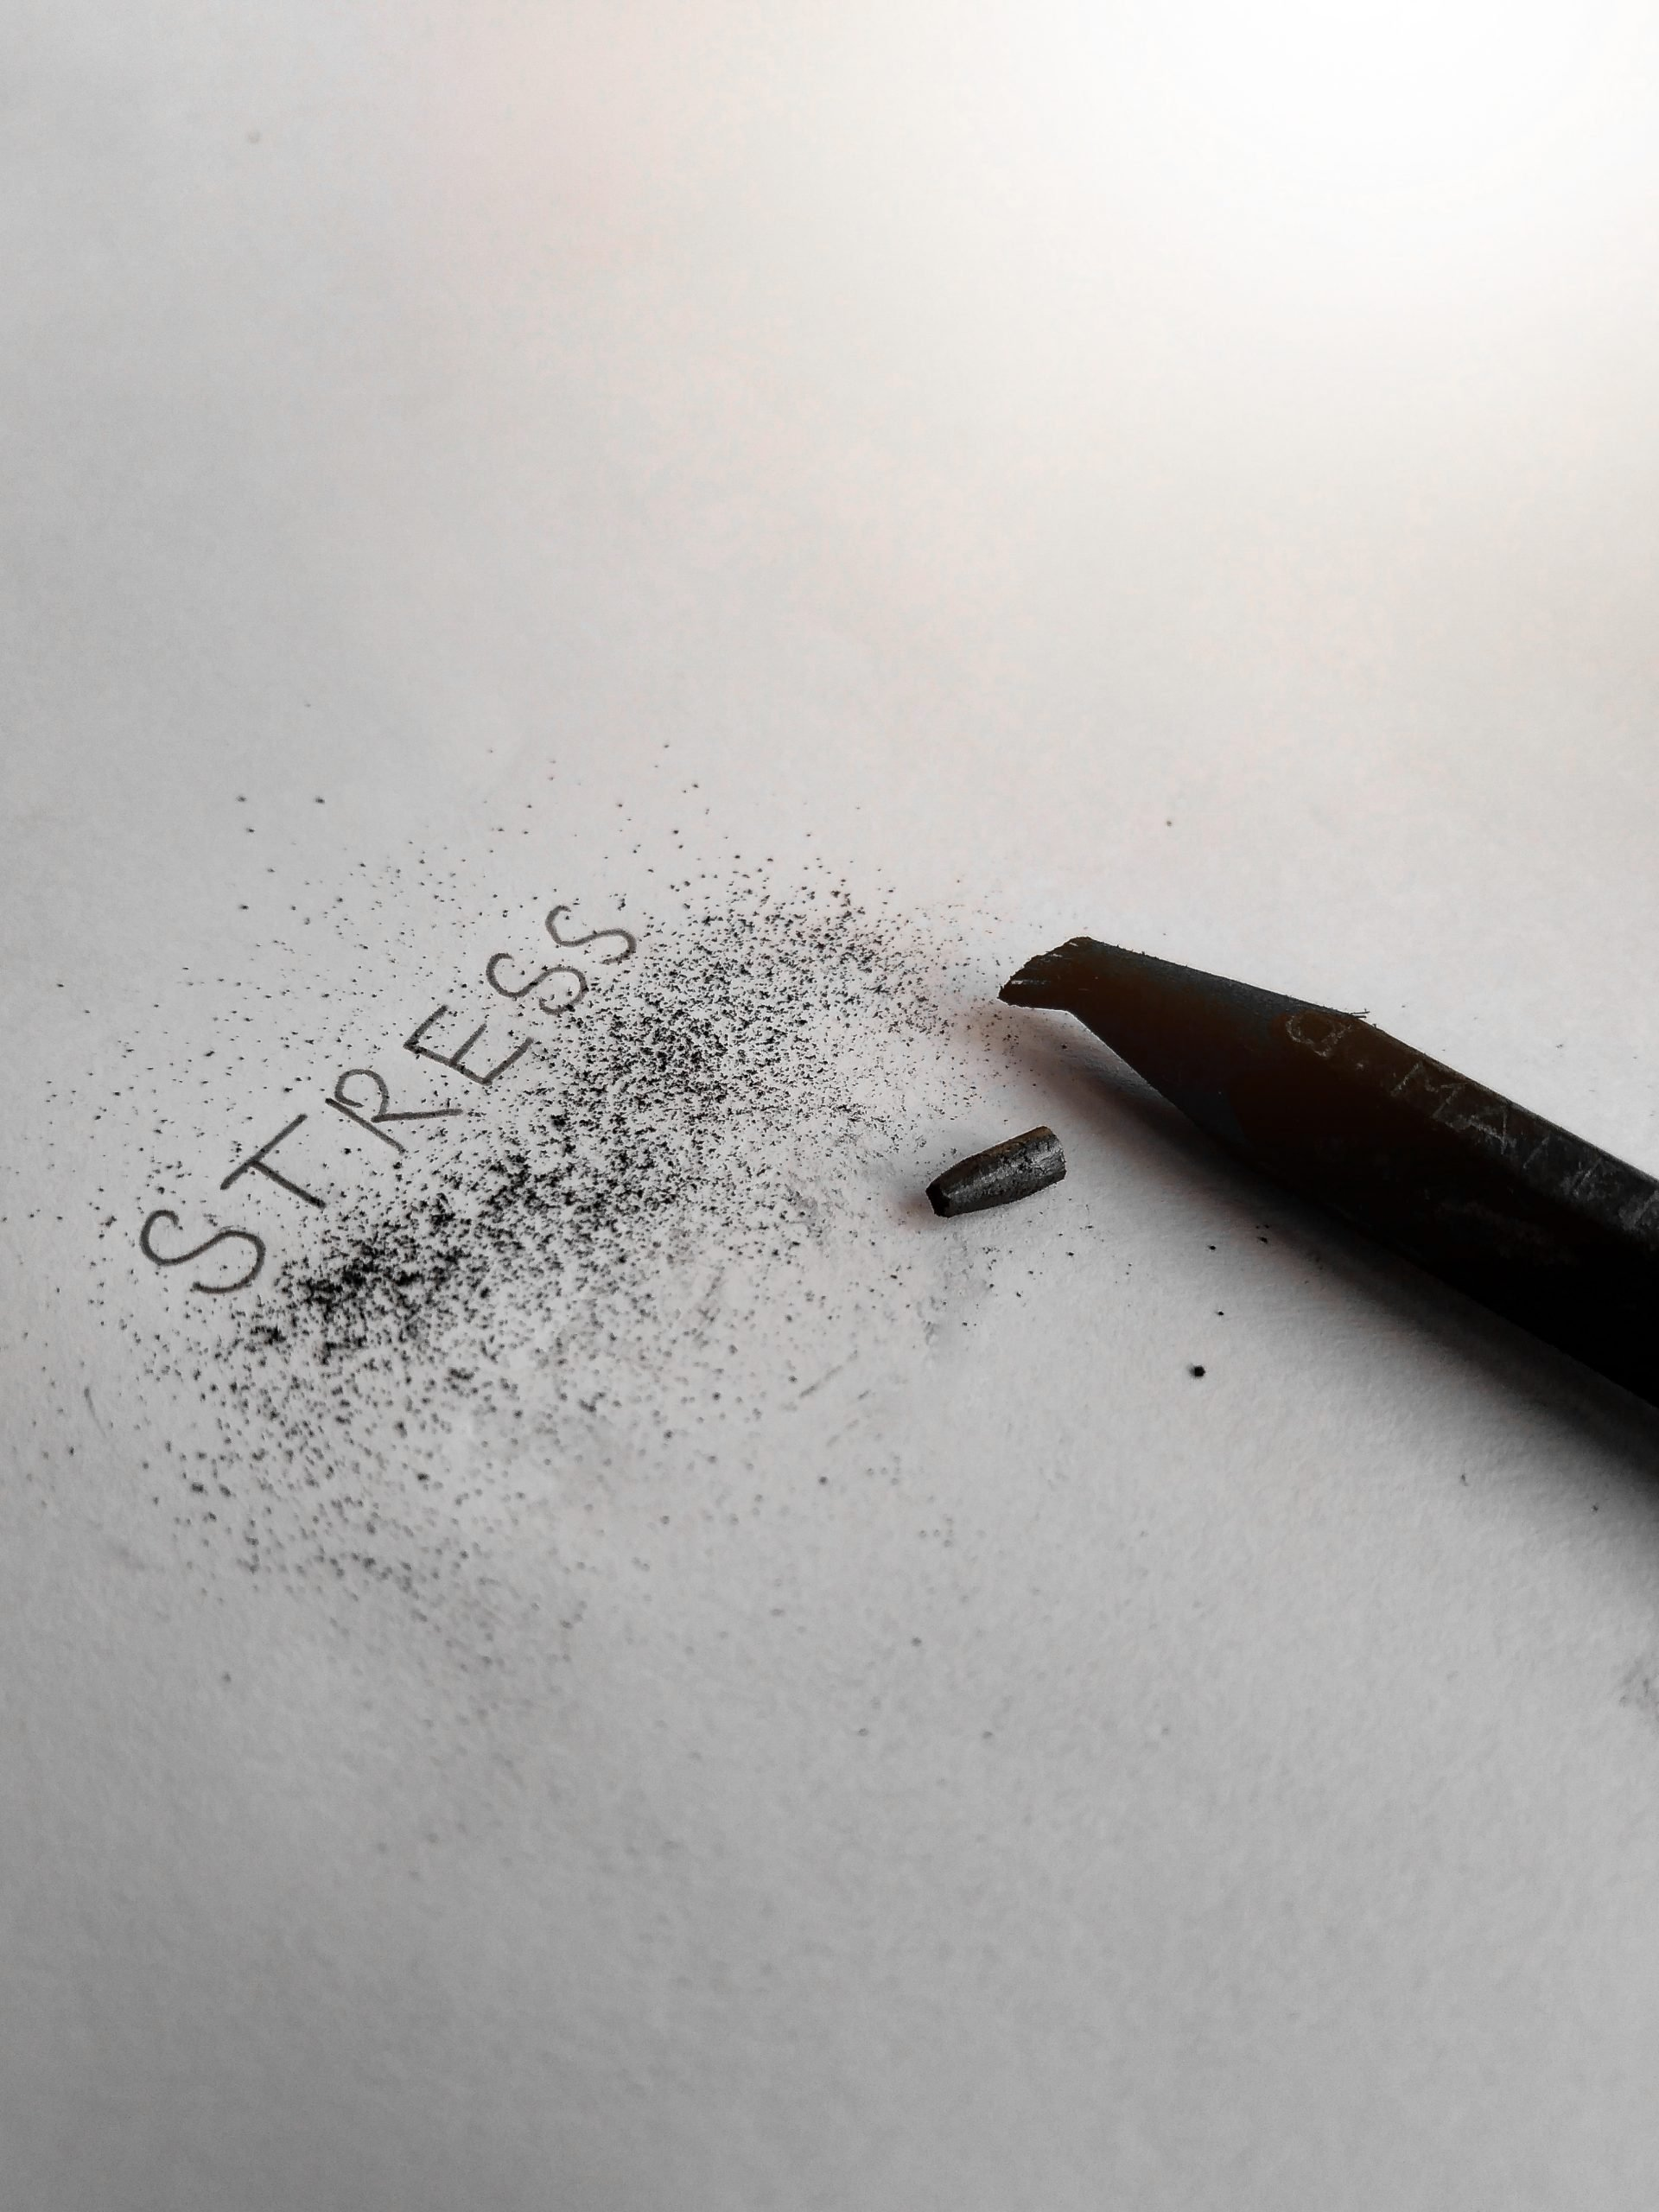 Stress written with a pencil